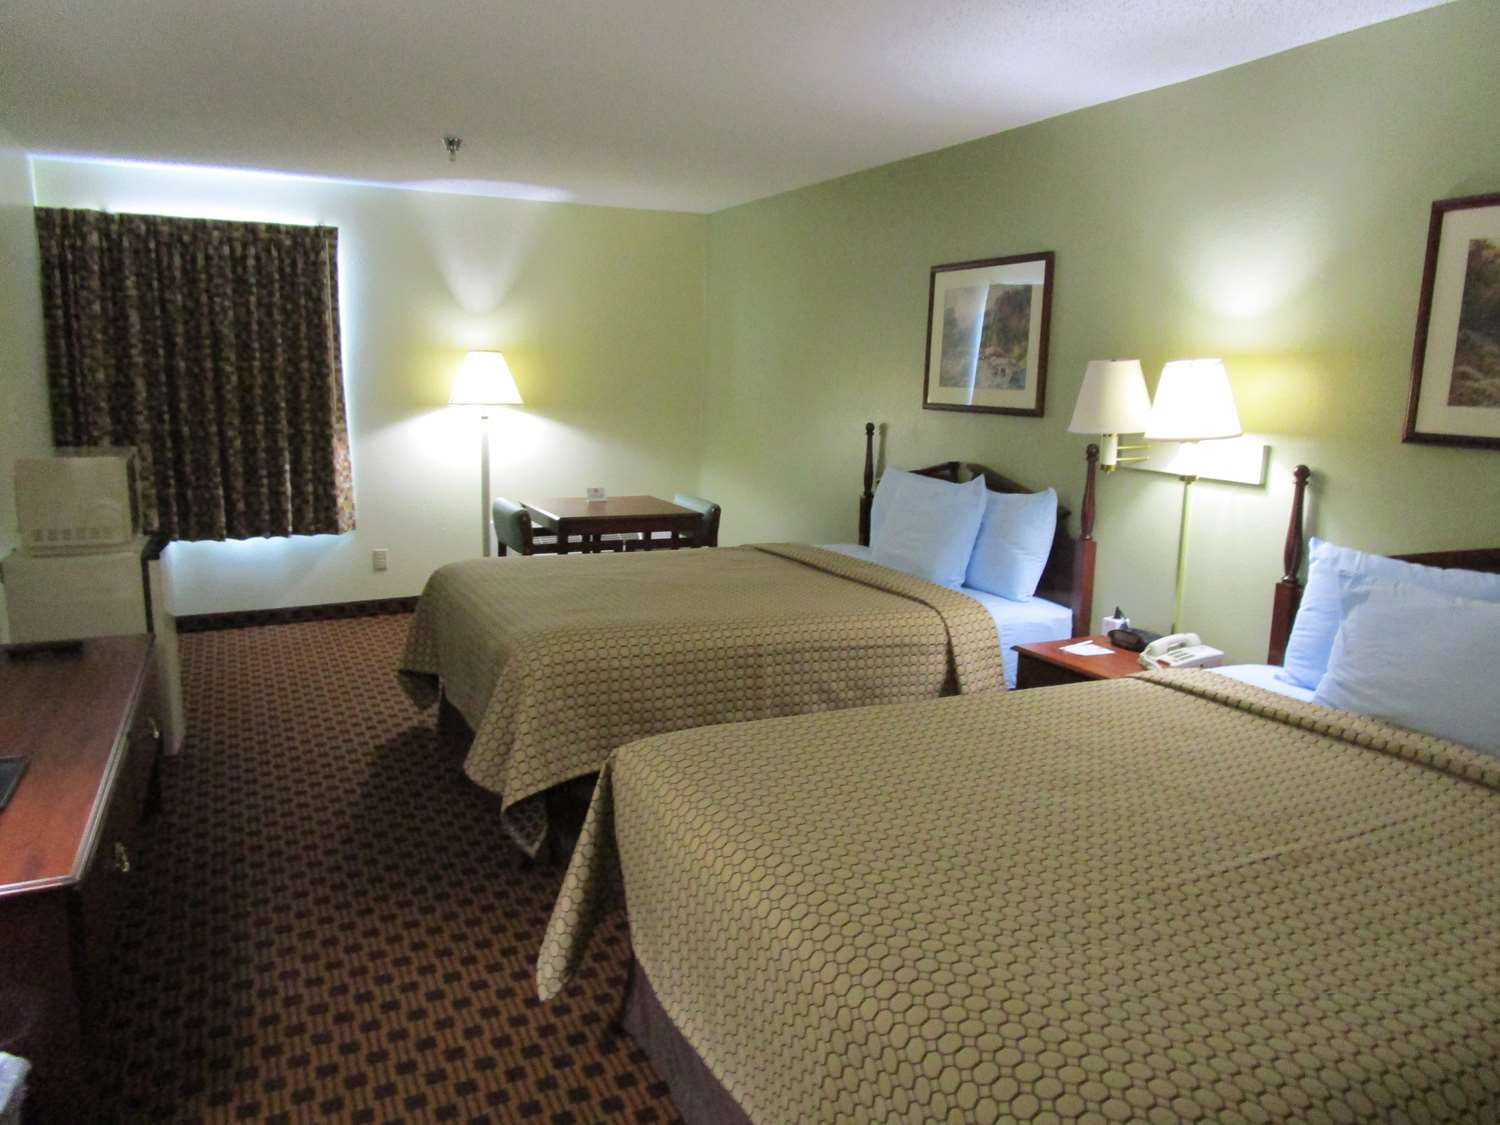 Room - SureStay Plus Hotel Hamilton Place Mall Chattanooga